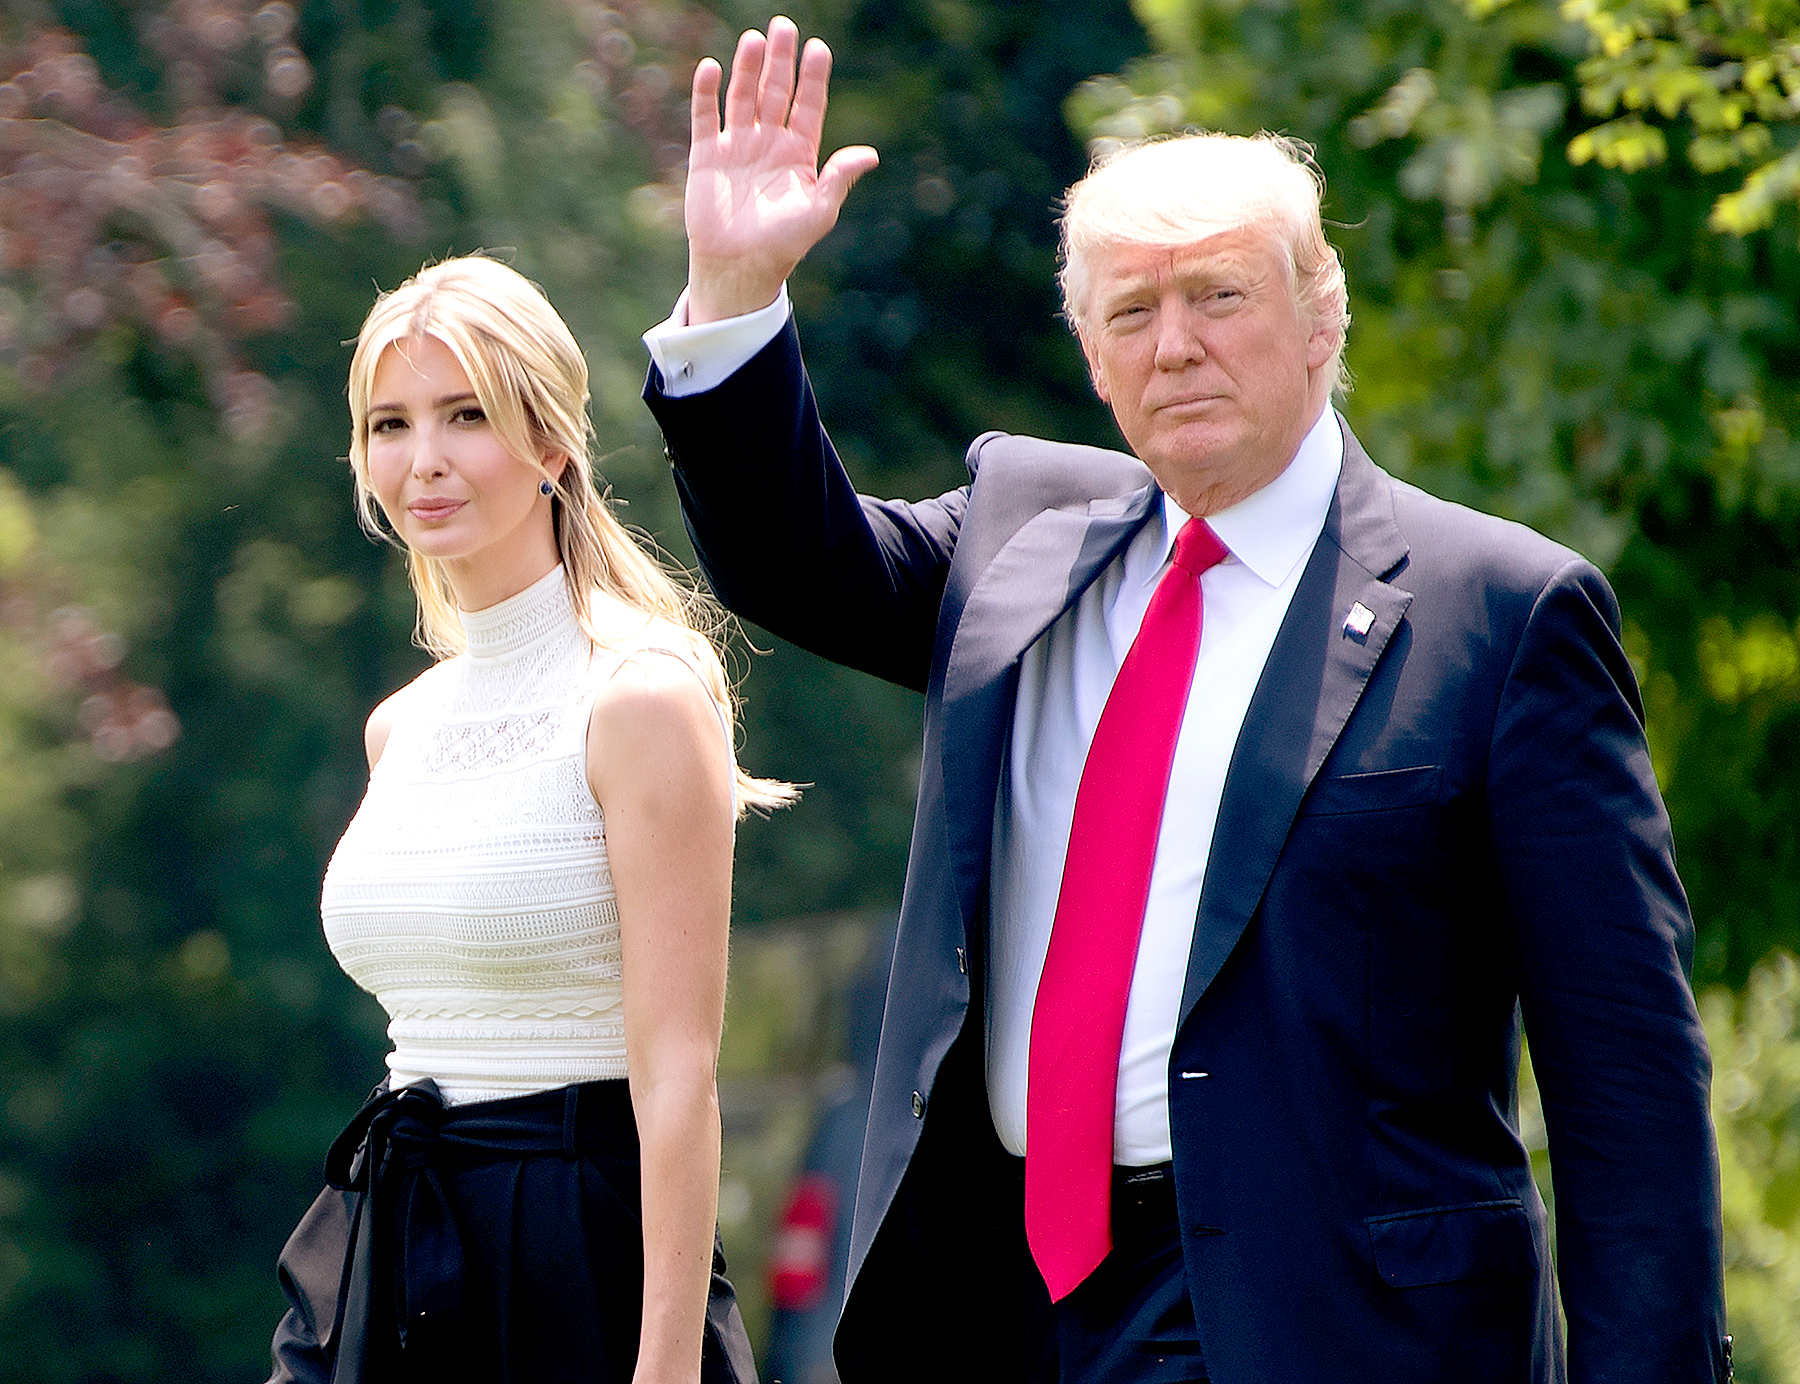 US President Donald Trump walks with his daughter Ivanka as they depart the White House in Washington, DC, June 13, 2017 en route to Wisconsin.